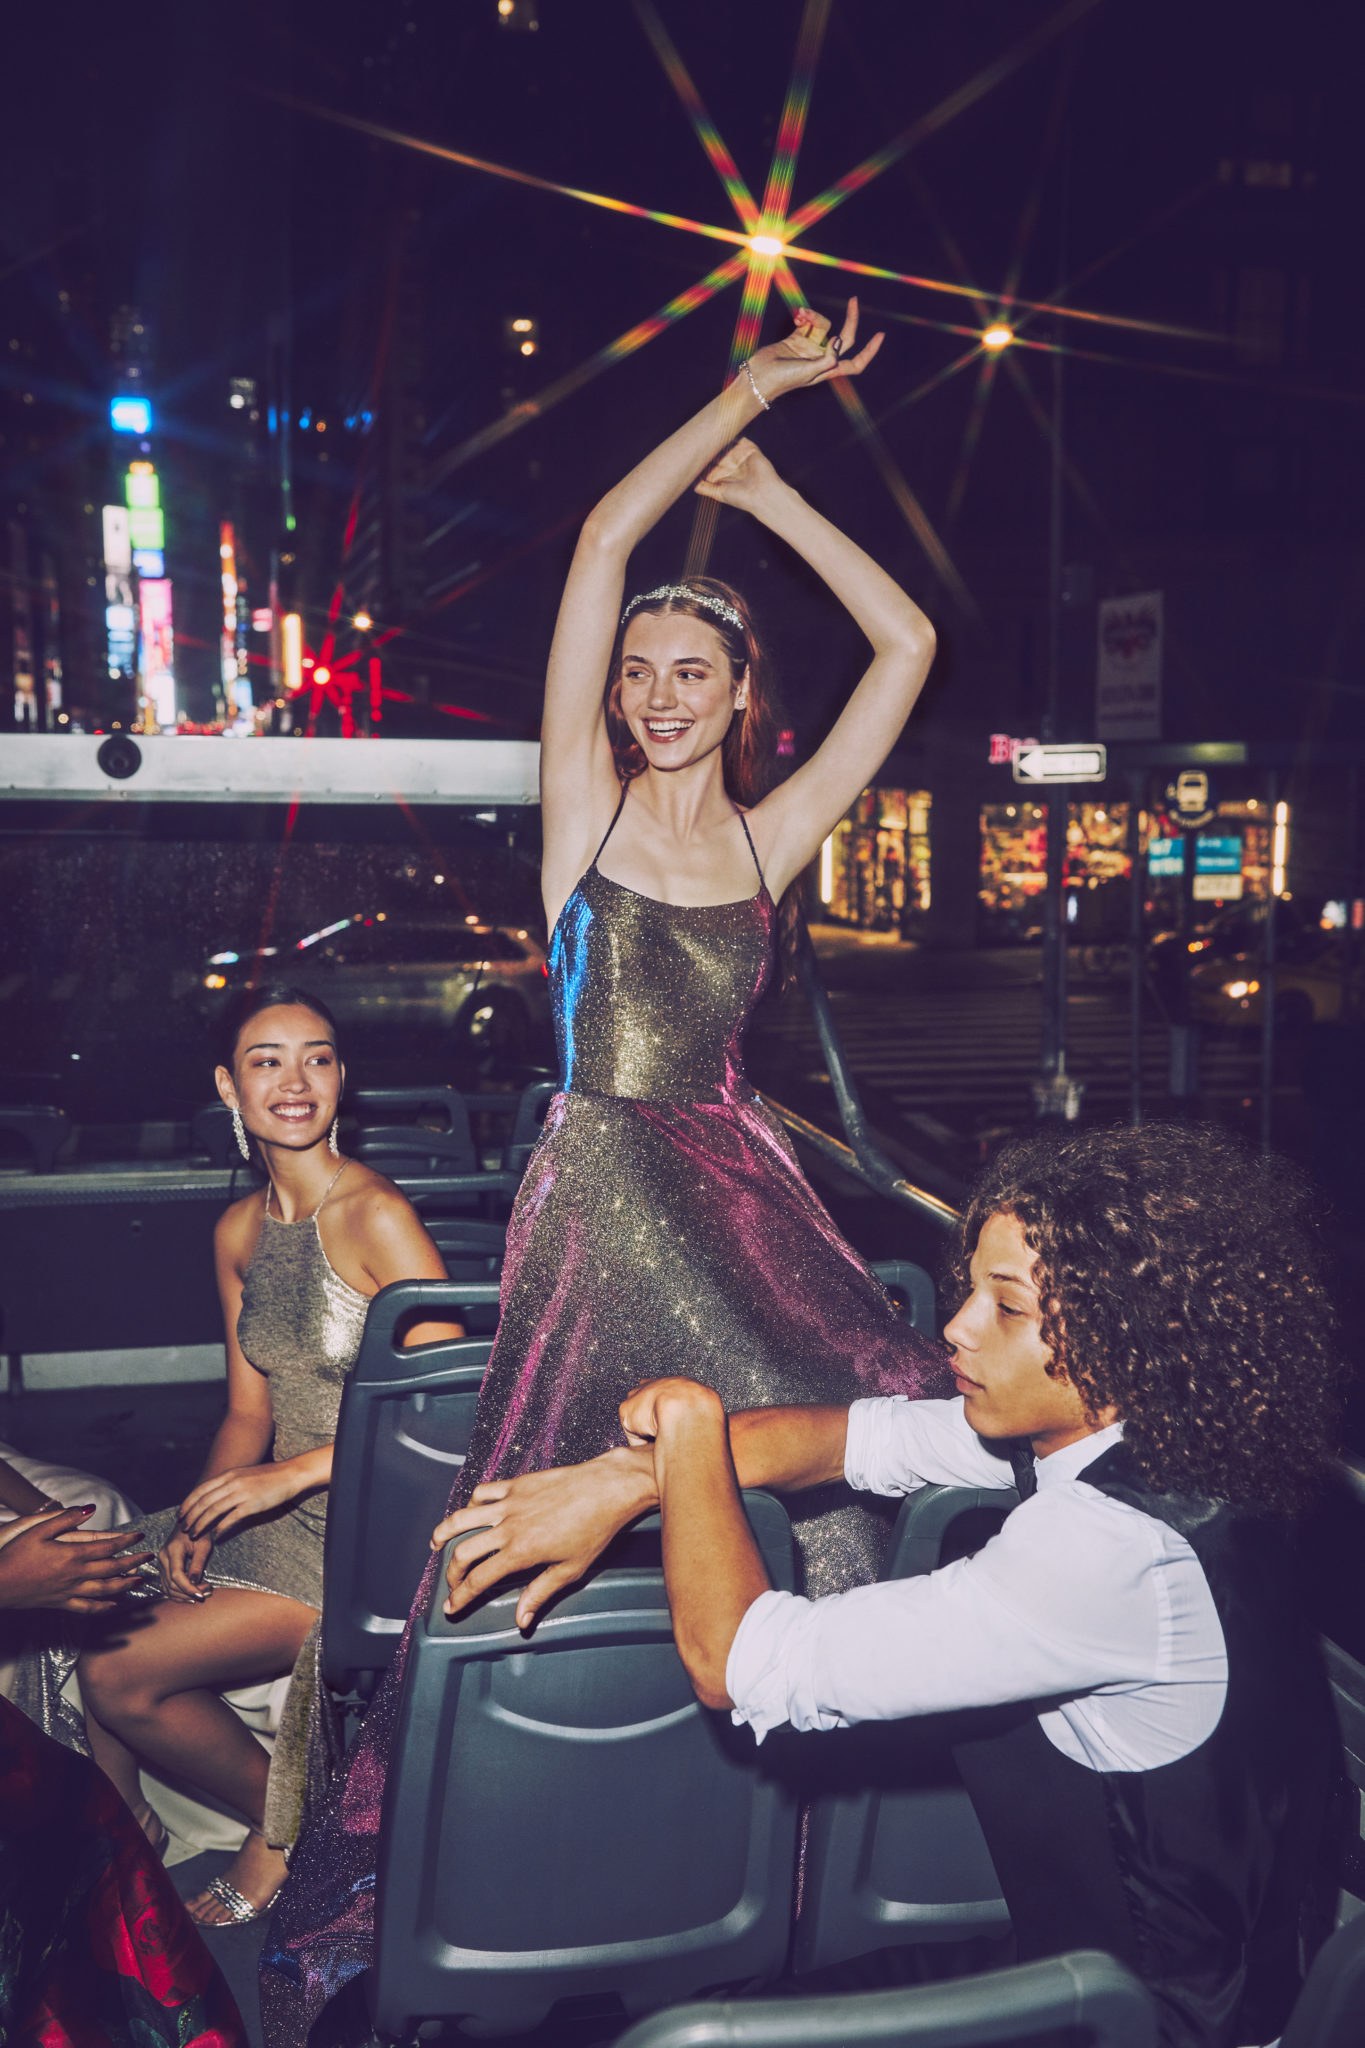 Girl in multicolored ball gown prom dress on bus in New York City